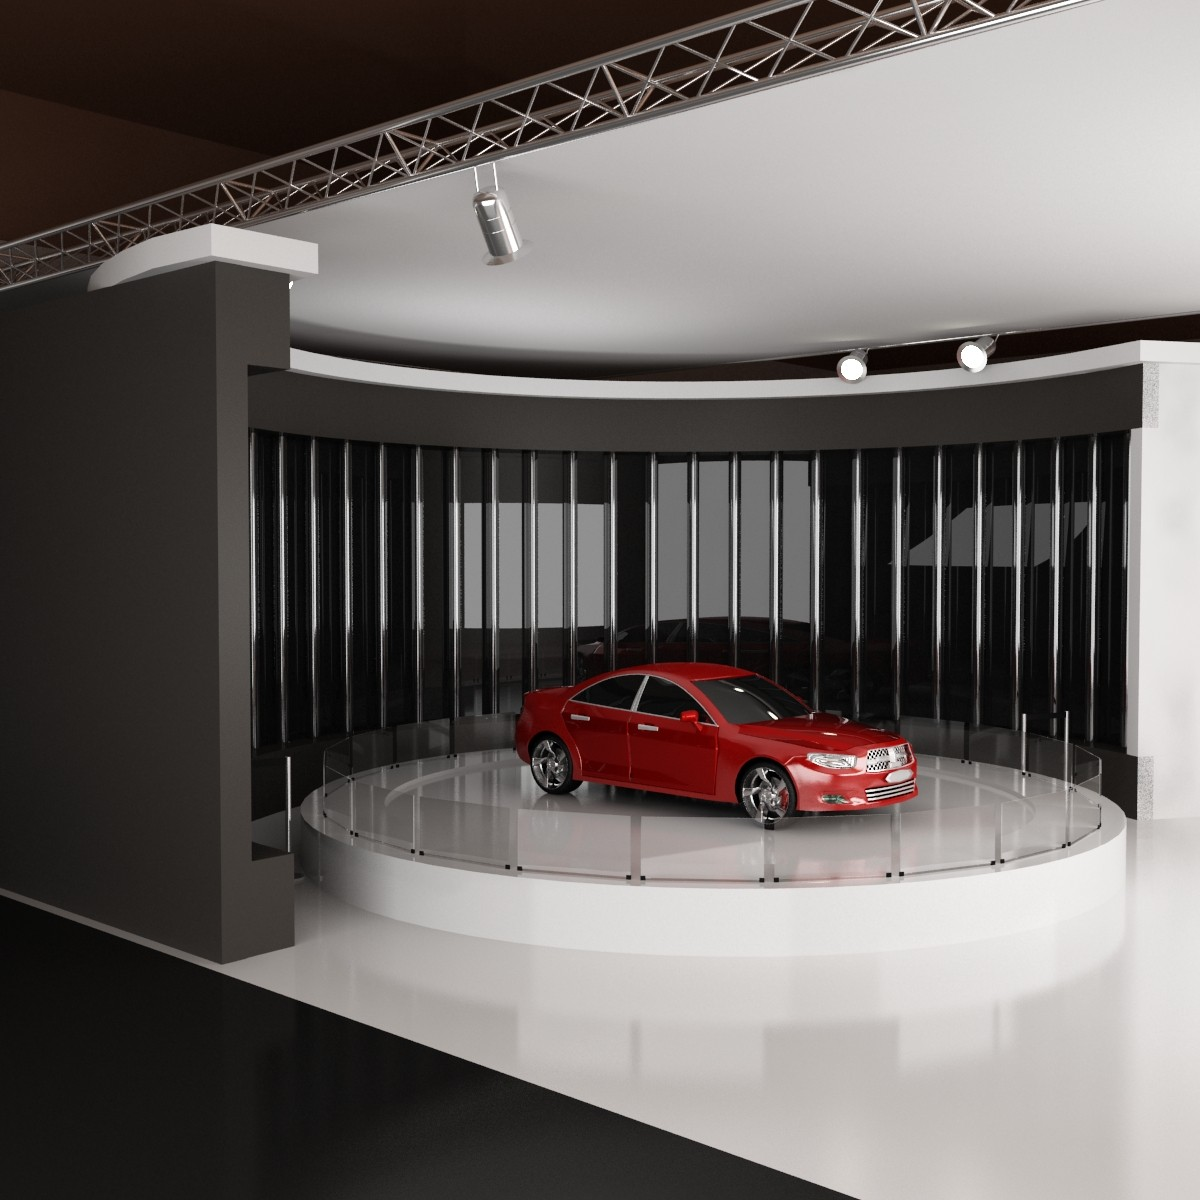 Exhibition Stand Lighting Questions : Car exhibition stand d model